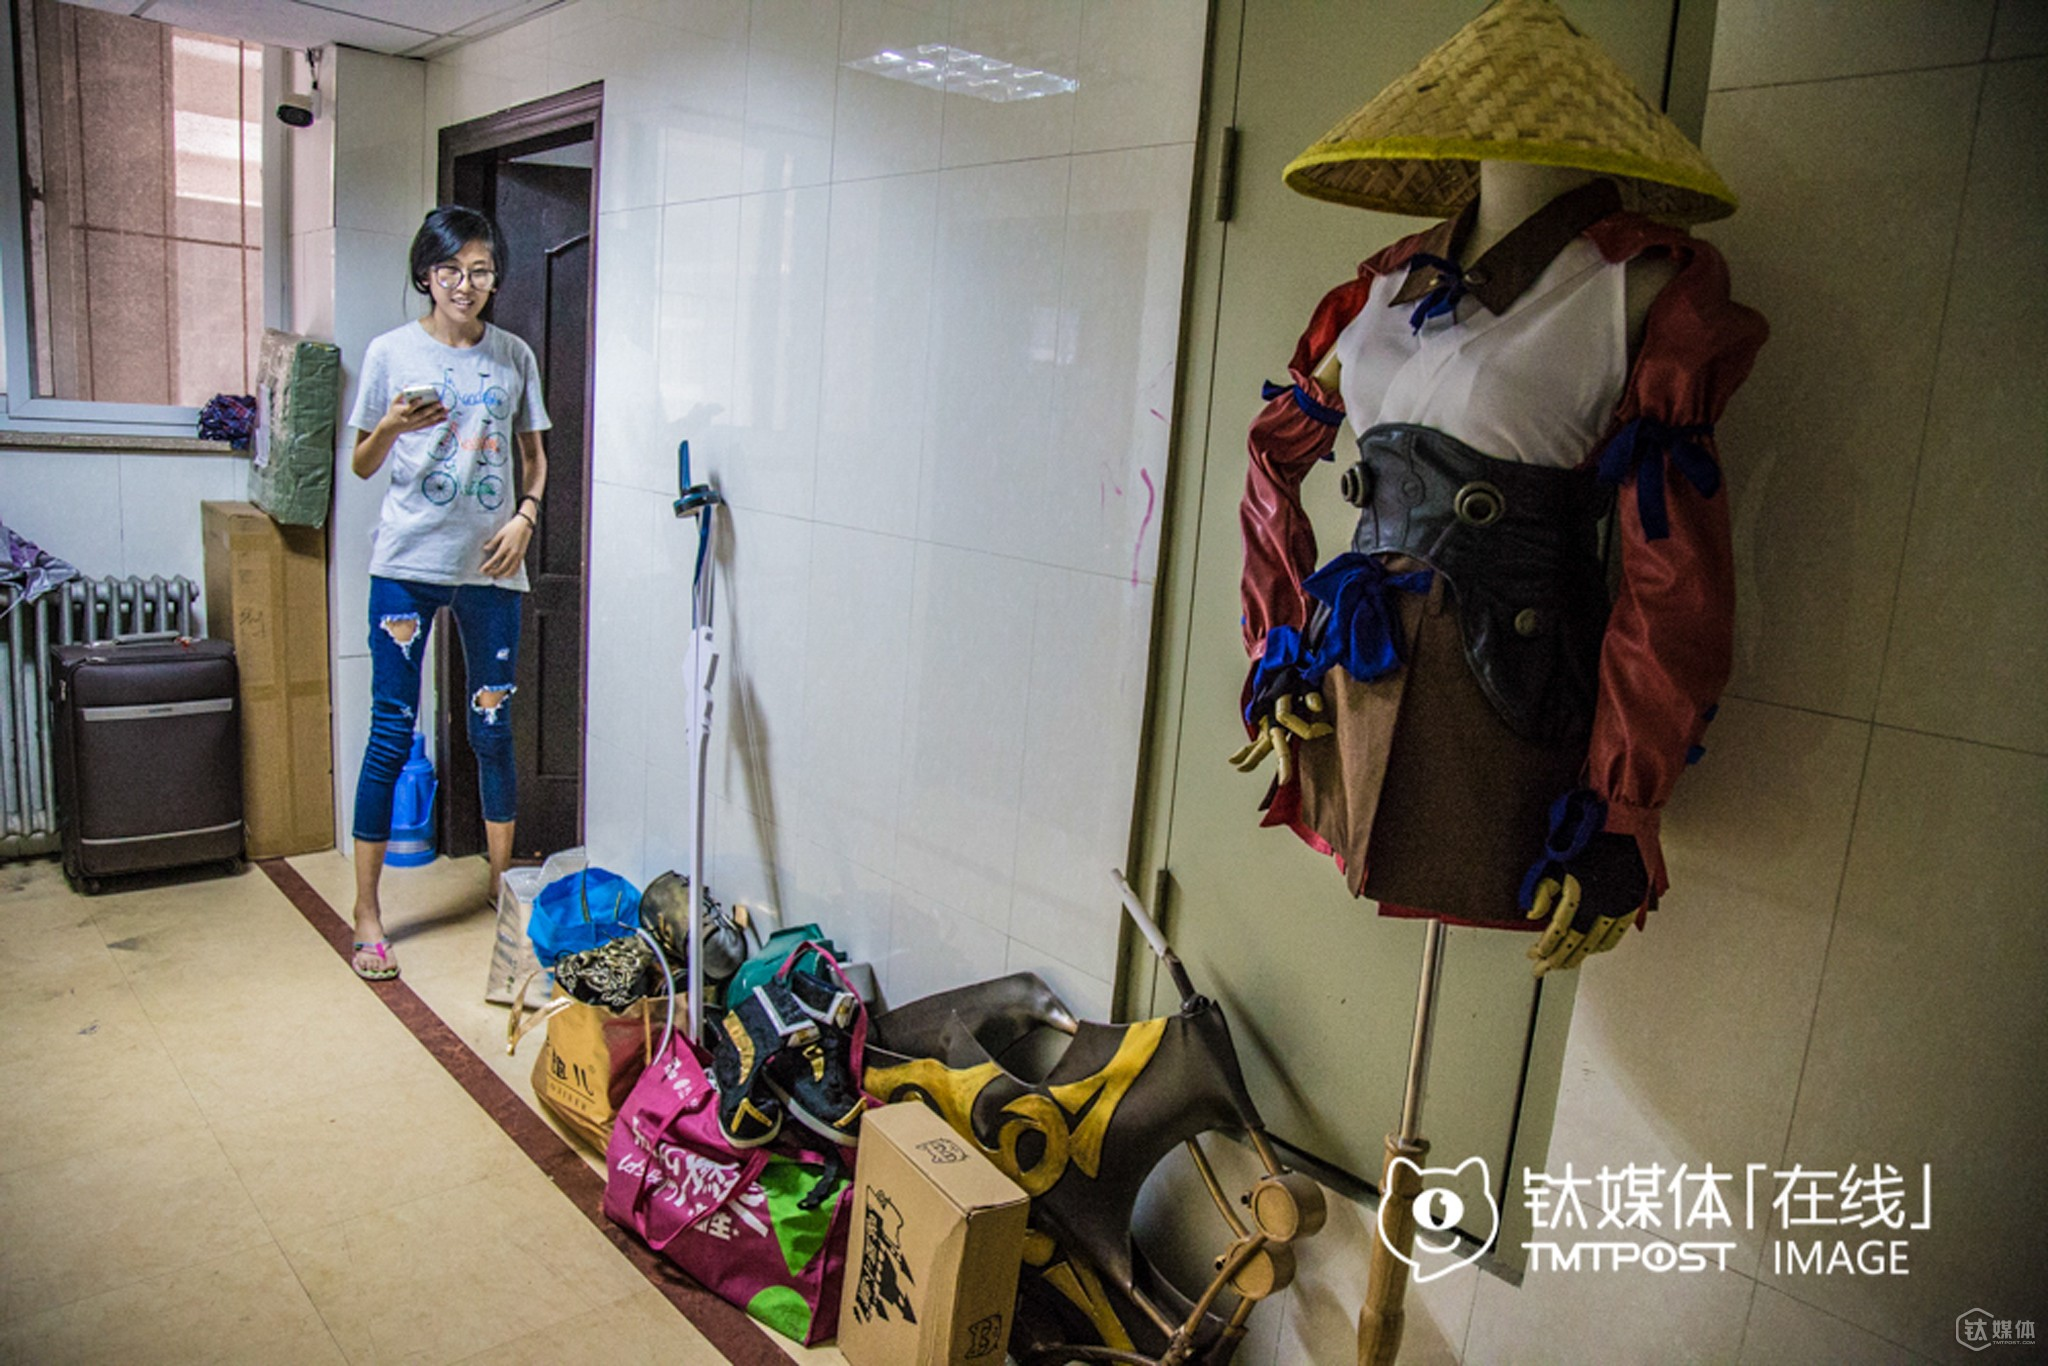 Lusan had no choice but to pile up her costumes on the corridor beside her dorm since it was too crowded inside the dorm.It cost her around RMB 4,000 to buy all these customers, mostly from Taobao. Her parents gave her RMB 2,000 every month, and she could earn around RMB 1,000 herself by doing part-time job. However, half her money was spent on cosplay, so she had to pinch and scrape.